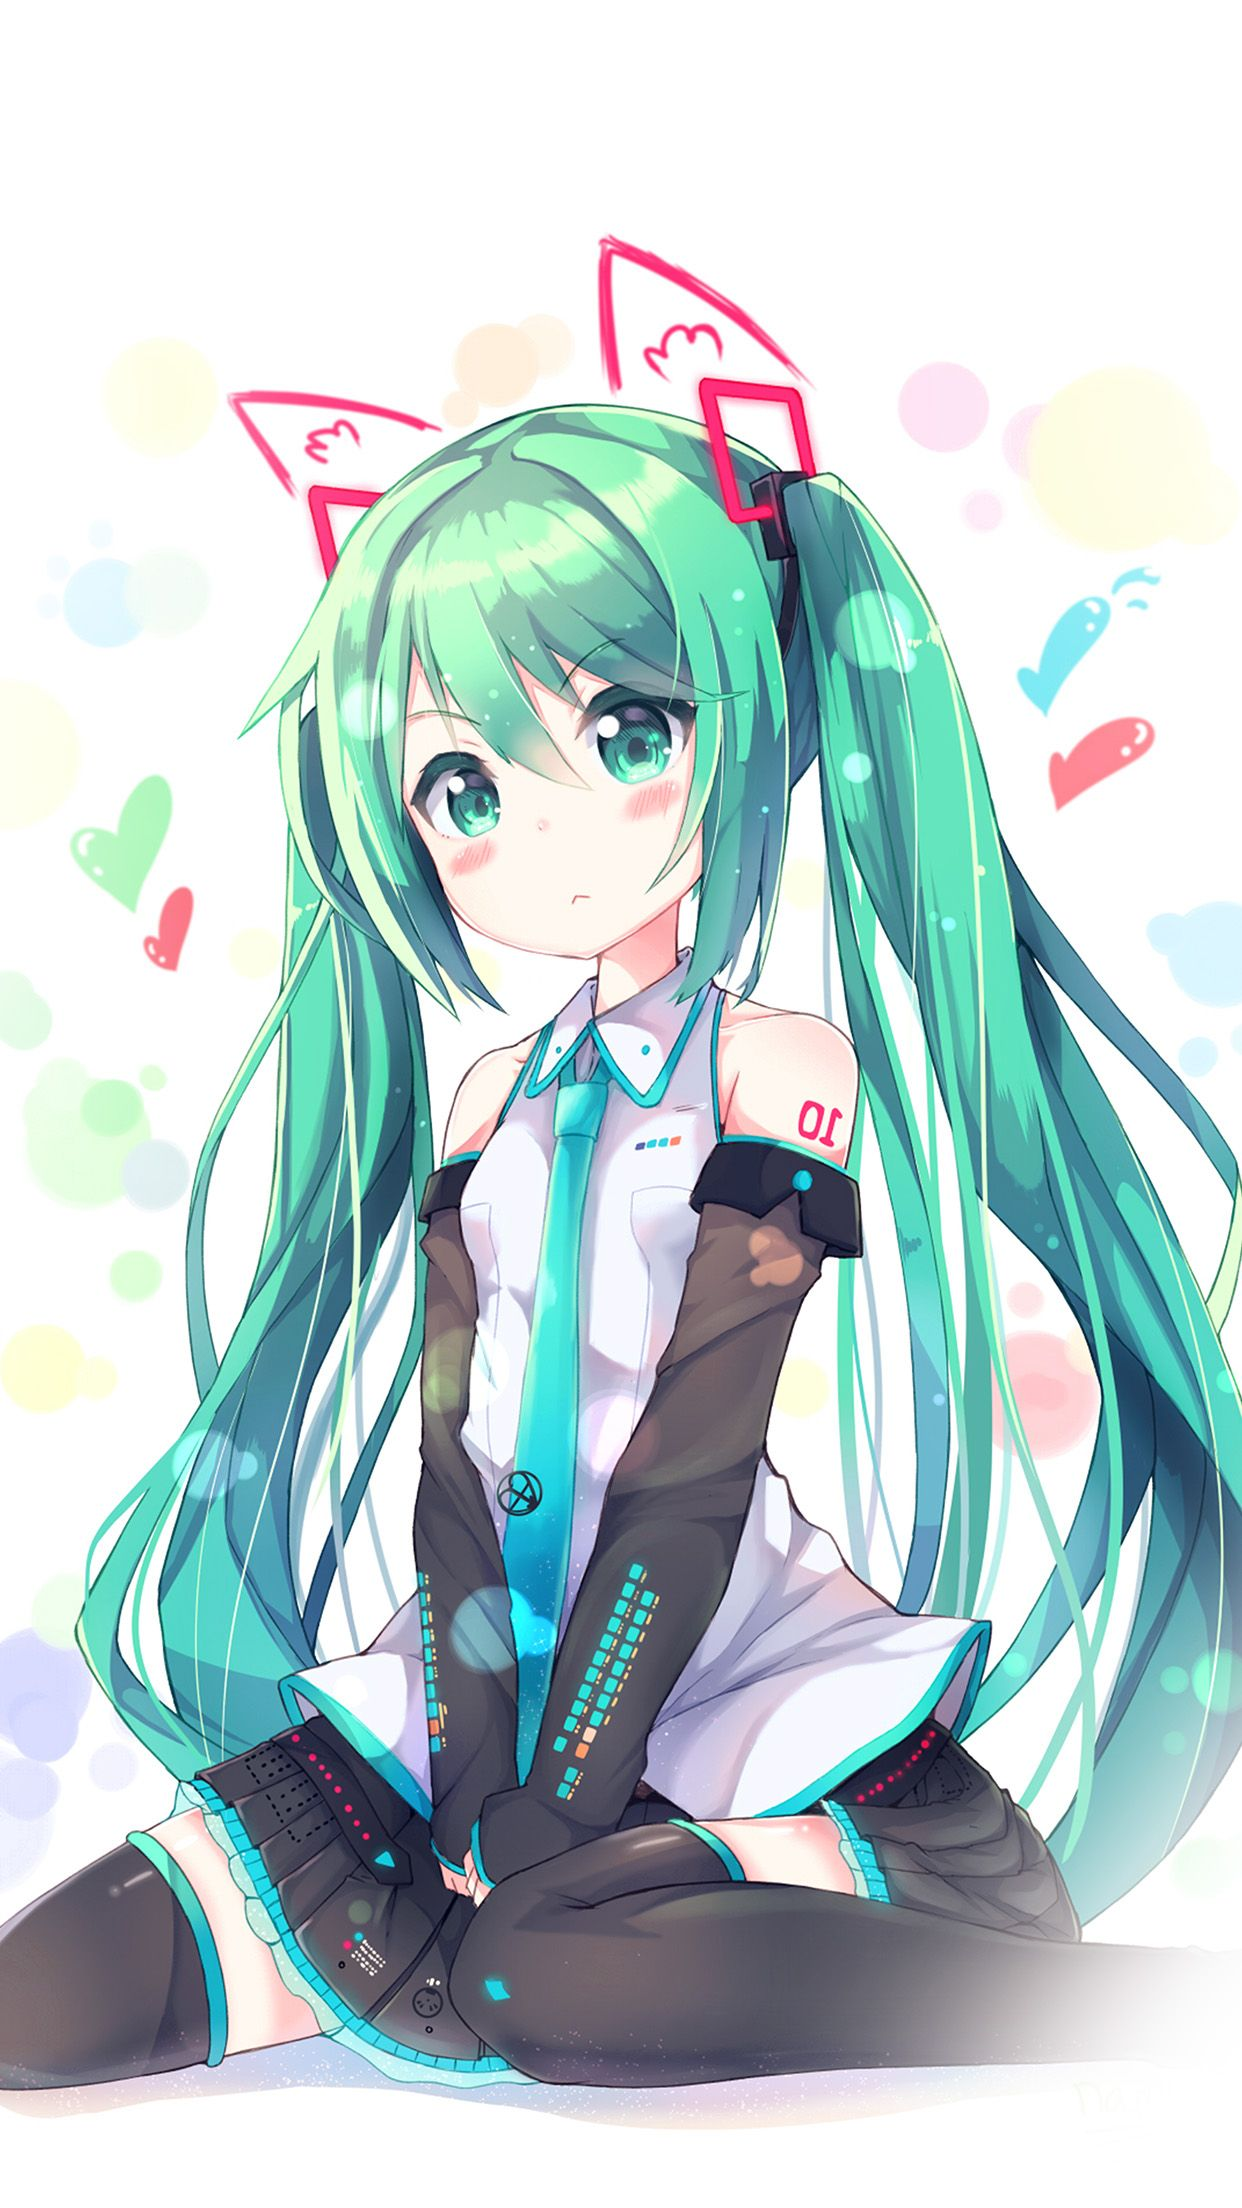 1242x2208 Hatsune Milk Anime Girl Illustration Art Android wallpaper - Android ...